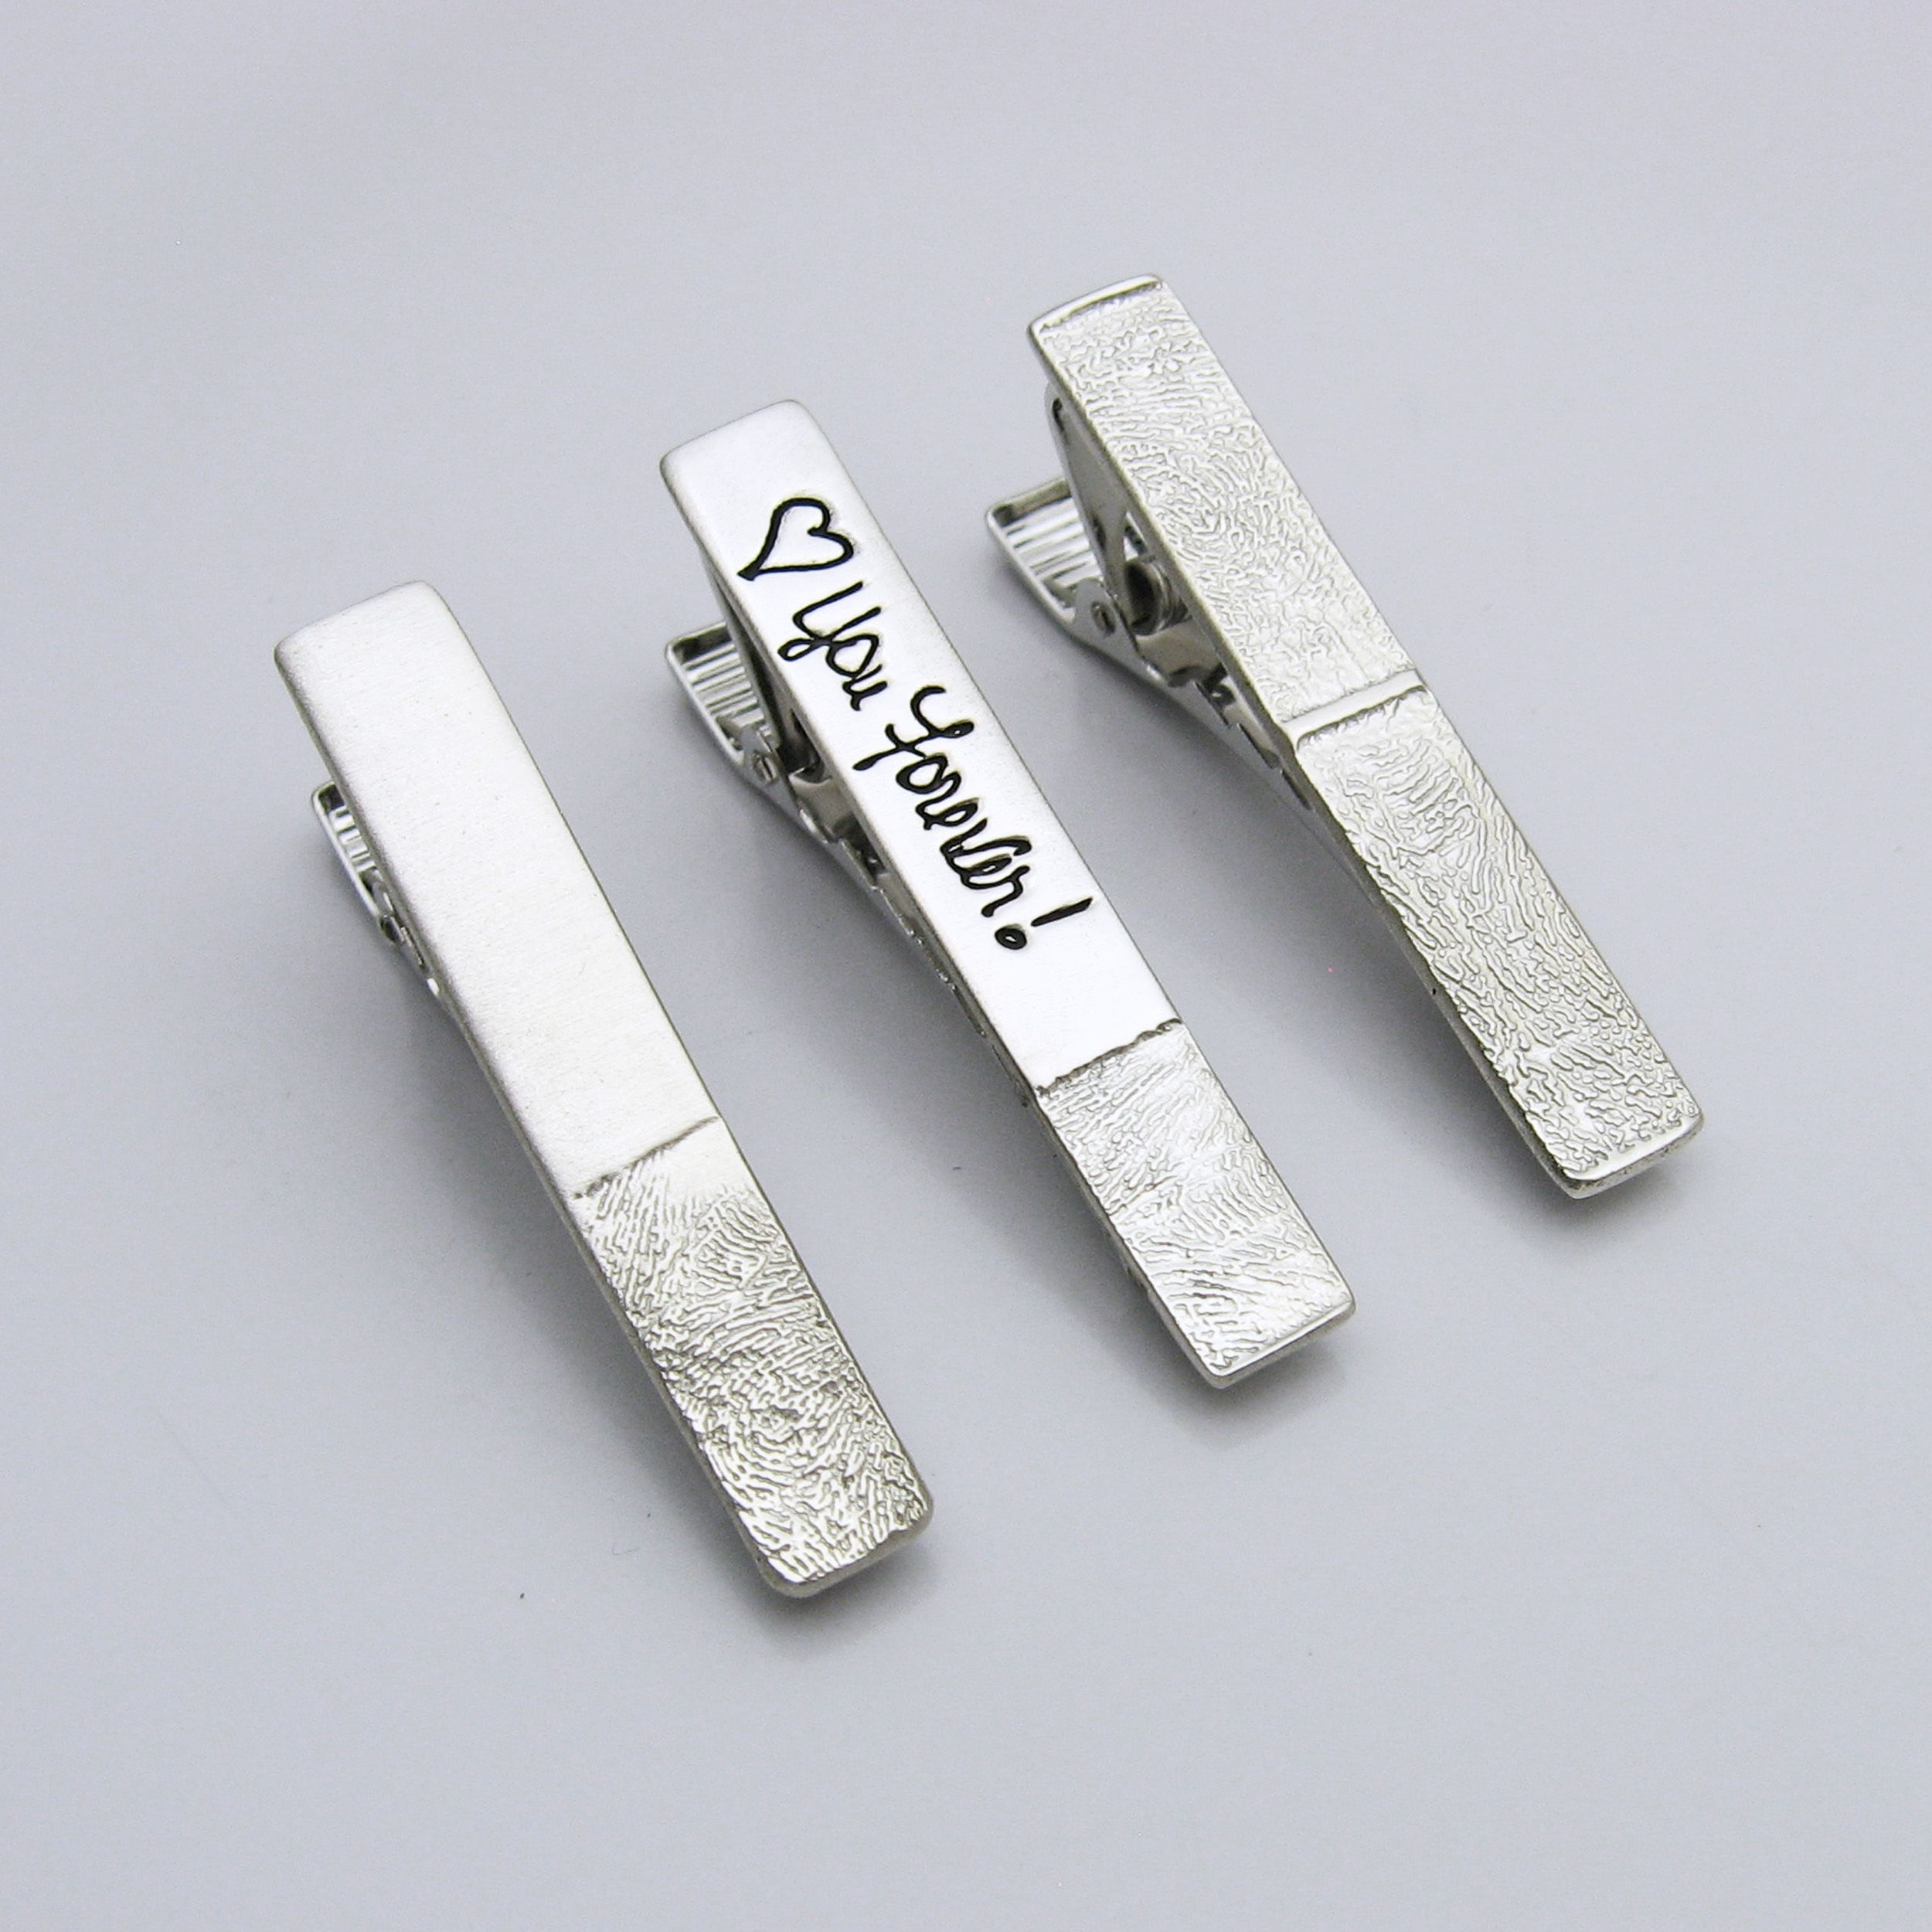 MONOGRAMMED SILVER OVAL ORNAMENTAL TIE CLIP INITIALS CUSTOM ENGRAVED CLASP BAR